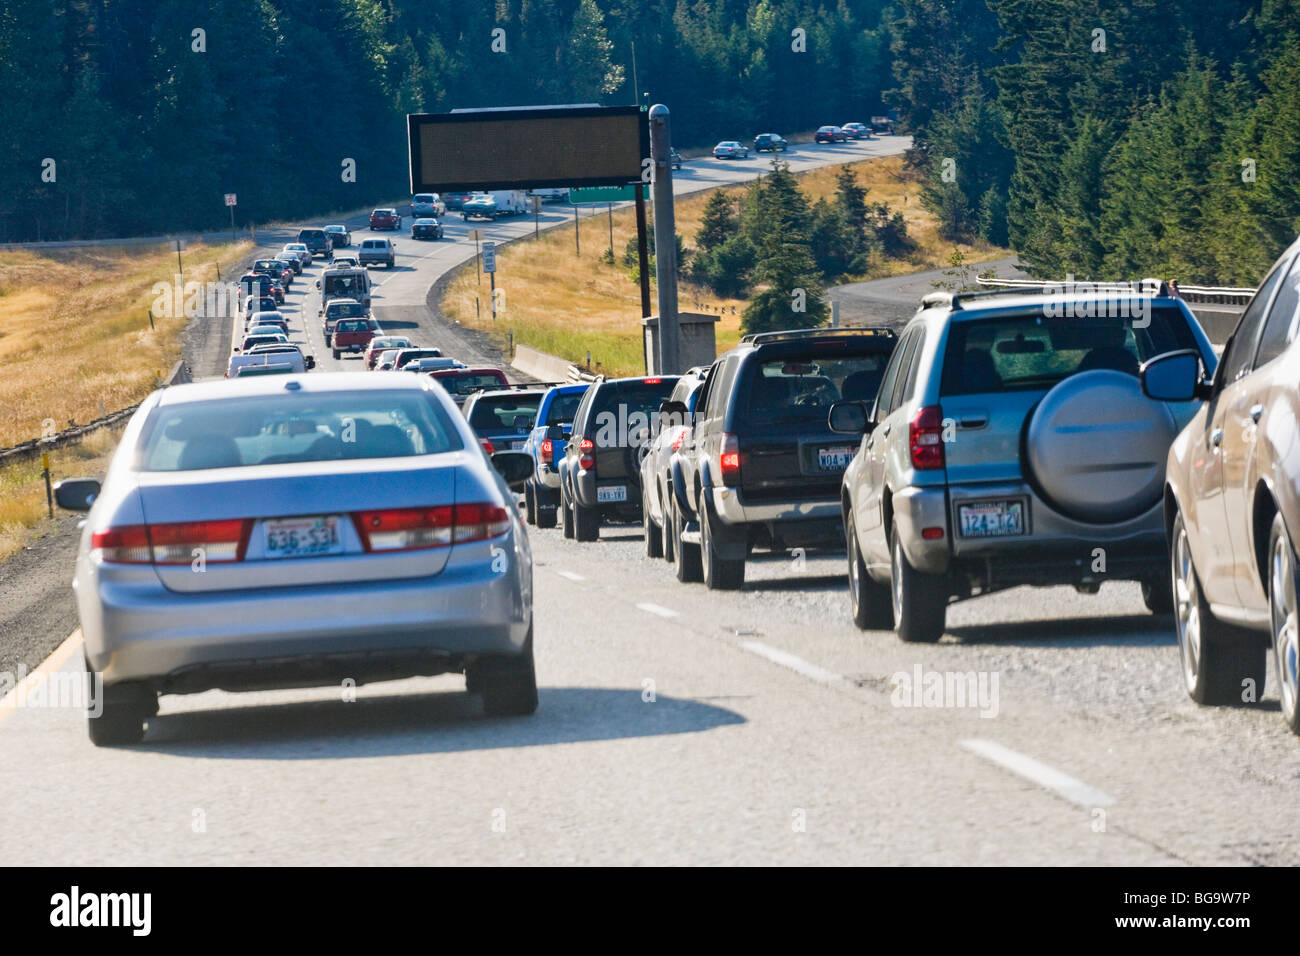 A traffic jam on Interstate 90 in the Central Cascades of Washington State, USA. - Stock Image